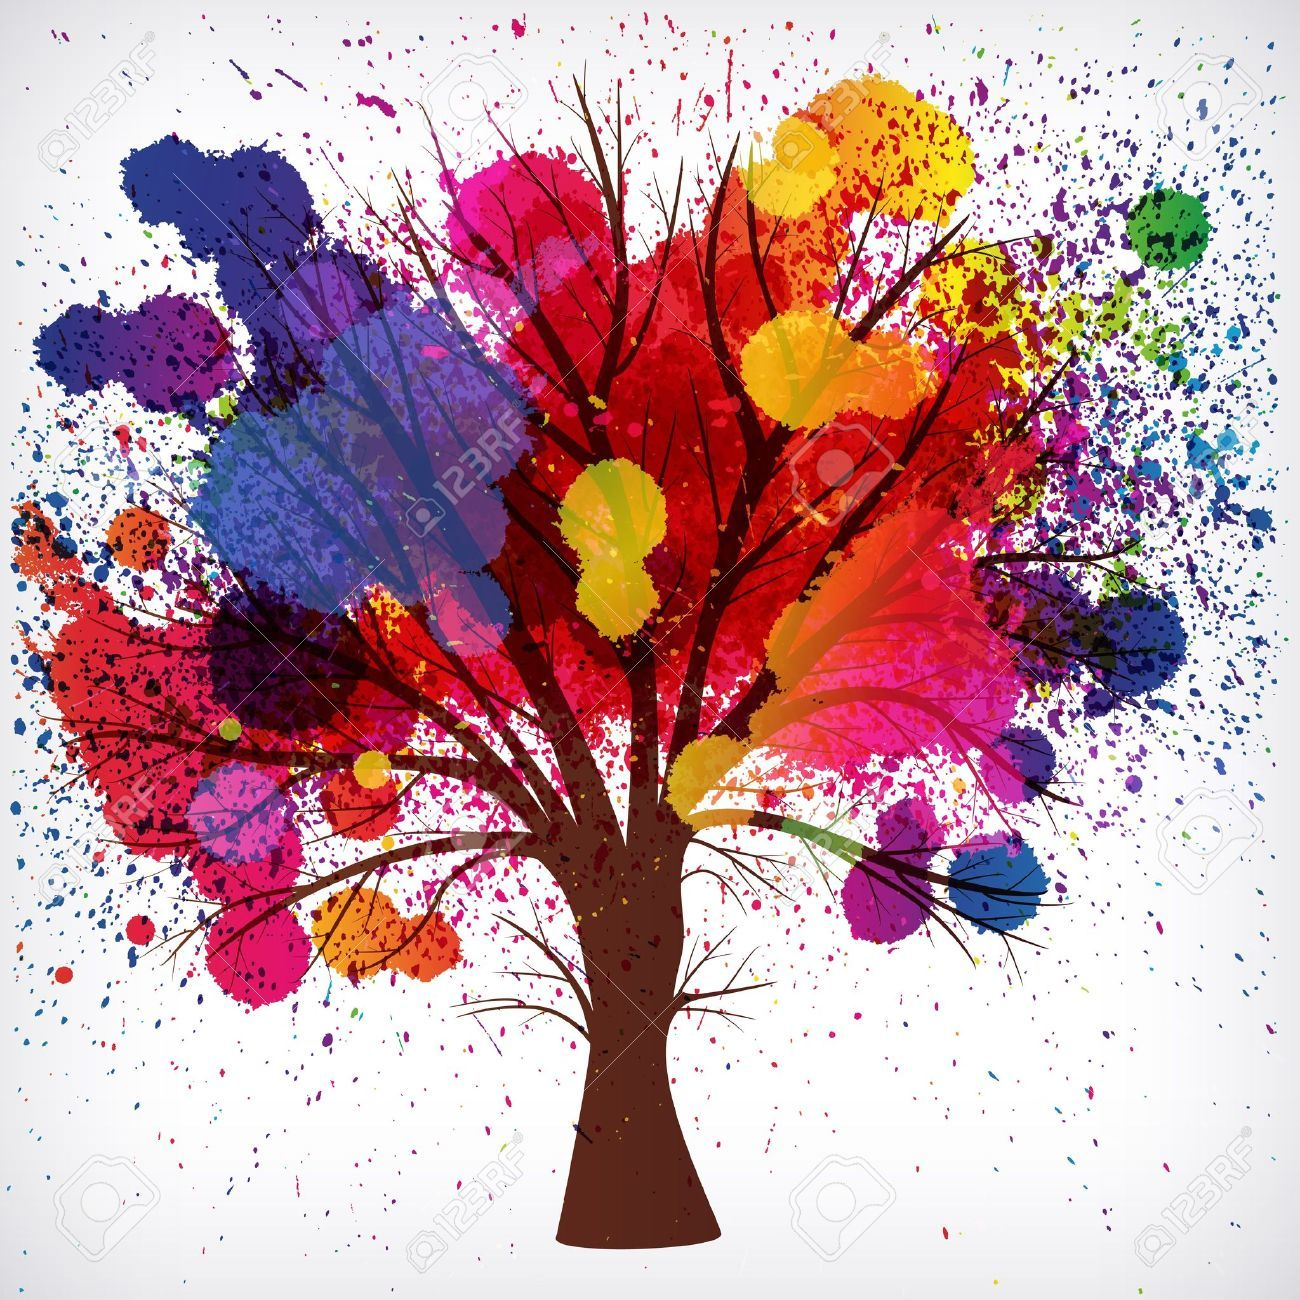 abstract background tree with branches made of watercolor